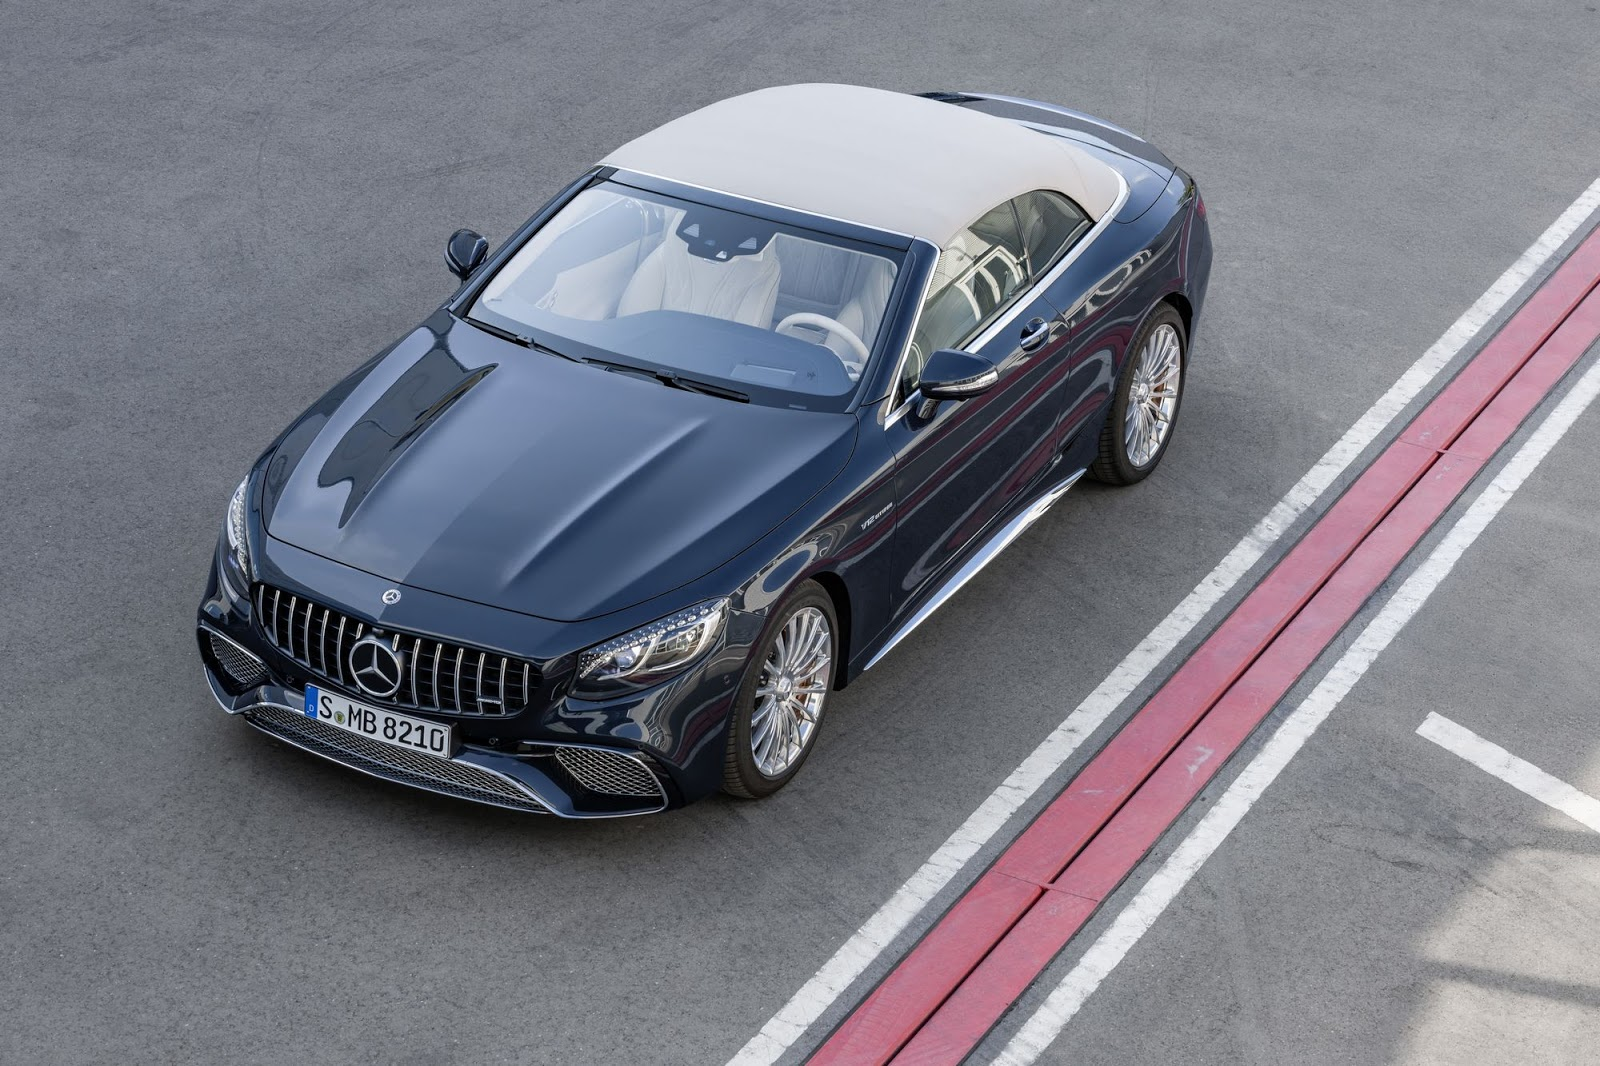 Mercedes-AMG S 65 Cabriolet, 2017. Exterieur: anthrazitblau metallic;Kraftstoffverbrauch kombiniert: 12,0 l/100 km; CO2-Emissionen kombiniert: 272 g/km*  Mercedes-AMG S 65 Cabriolet, 2017. Exterior: anthracite blue metallic;Fuel consumption combined: 12.0 l/100 km; CO2 emissions combined: 272 g/km*